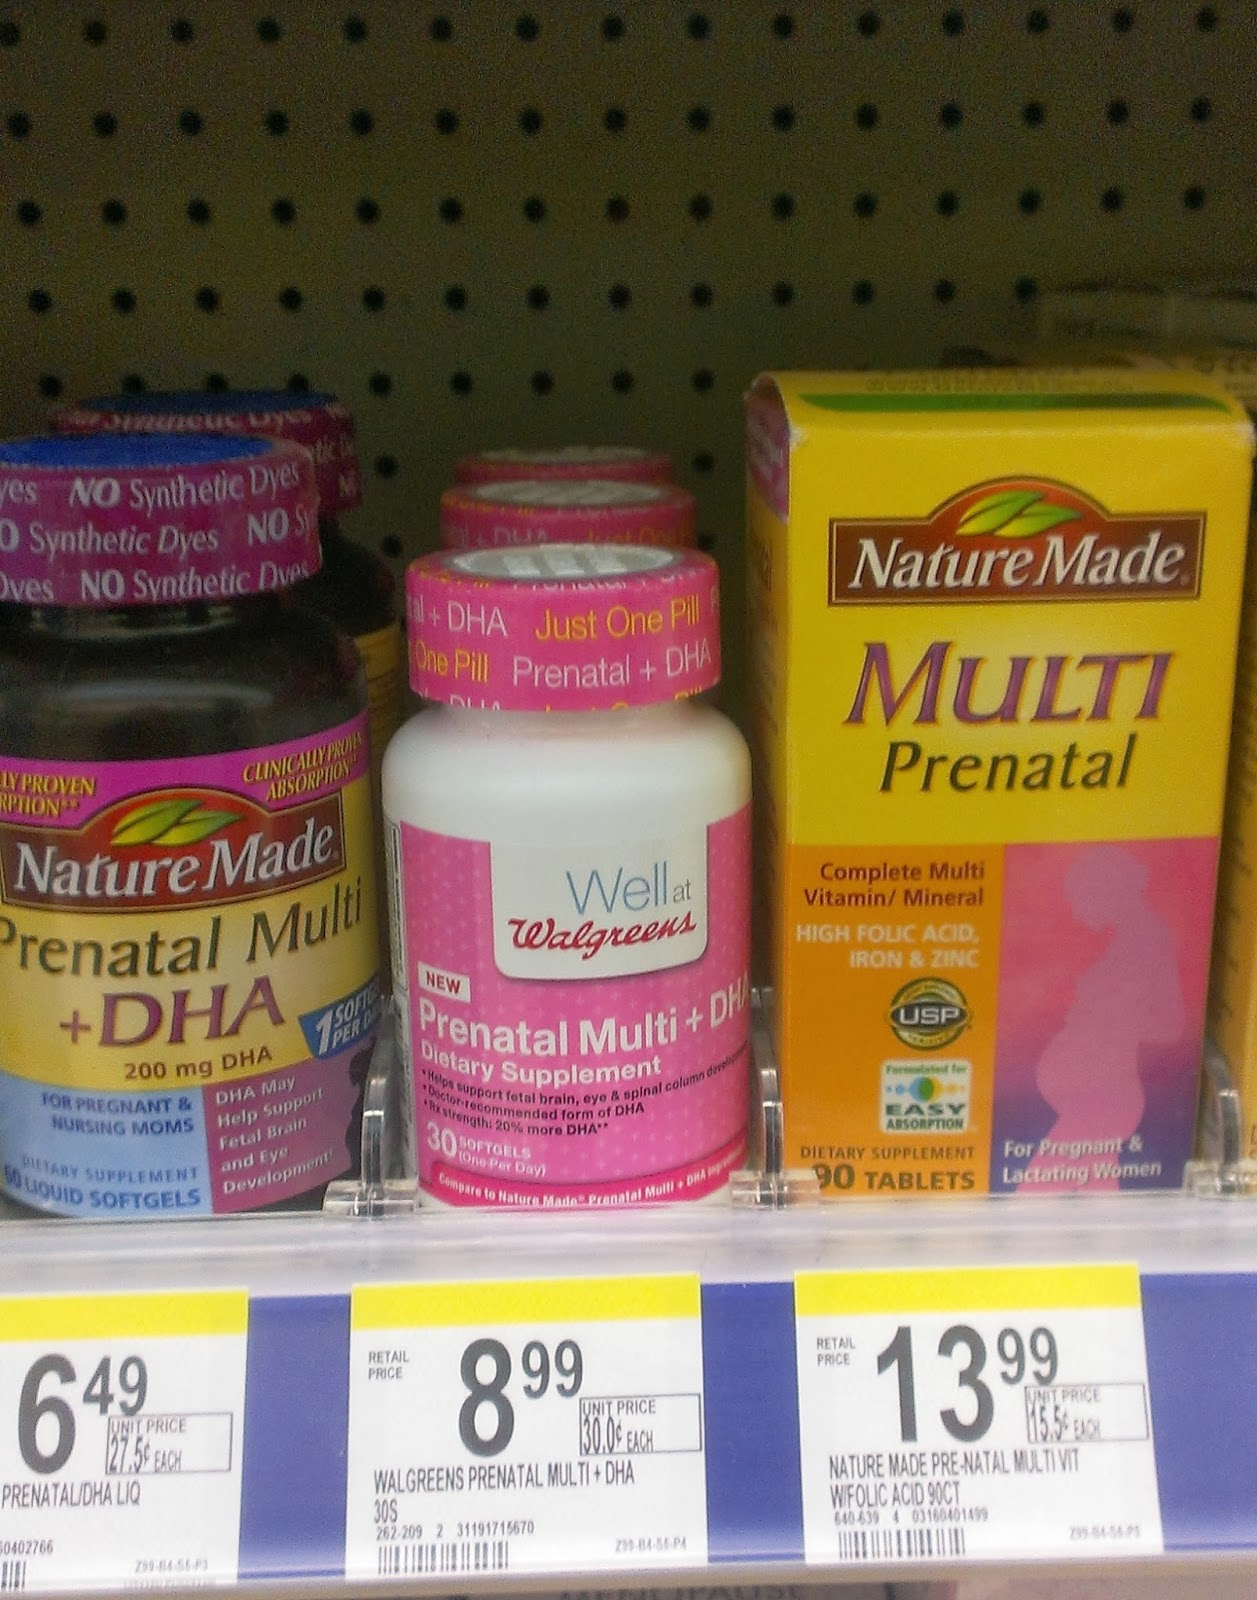 Well at Walgreens Prenatal